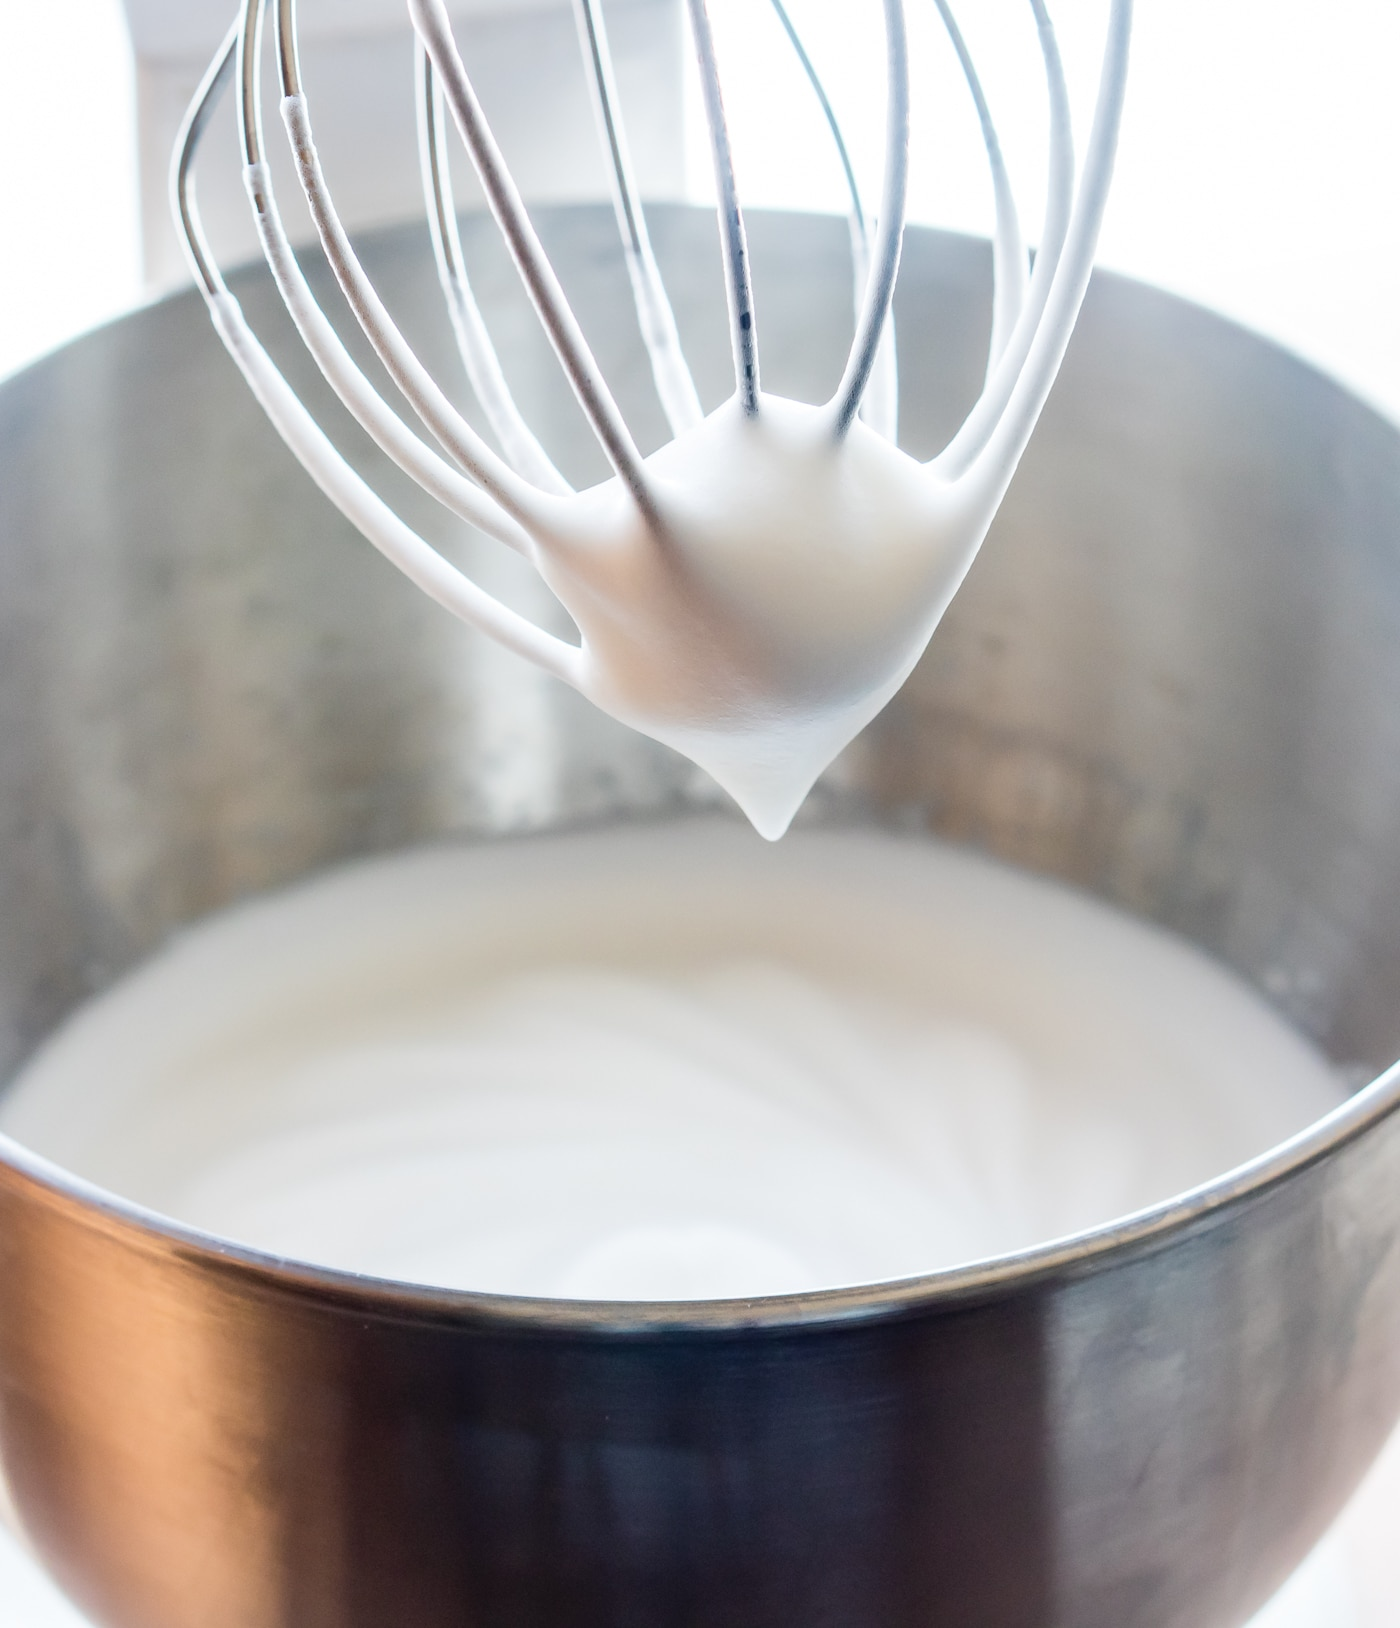 aquafaba in the bowl of a stand mixer